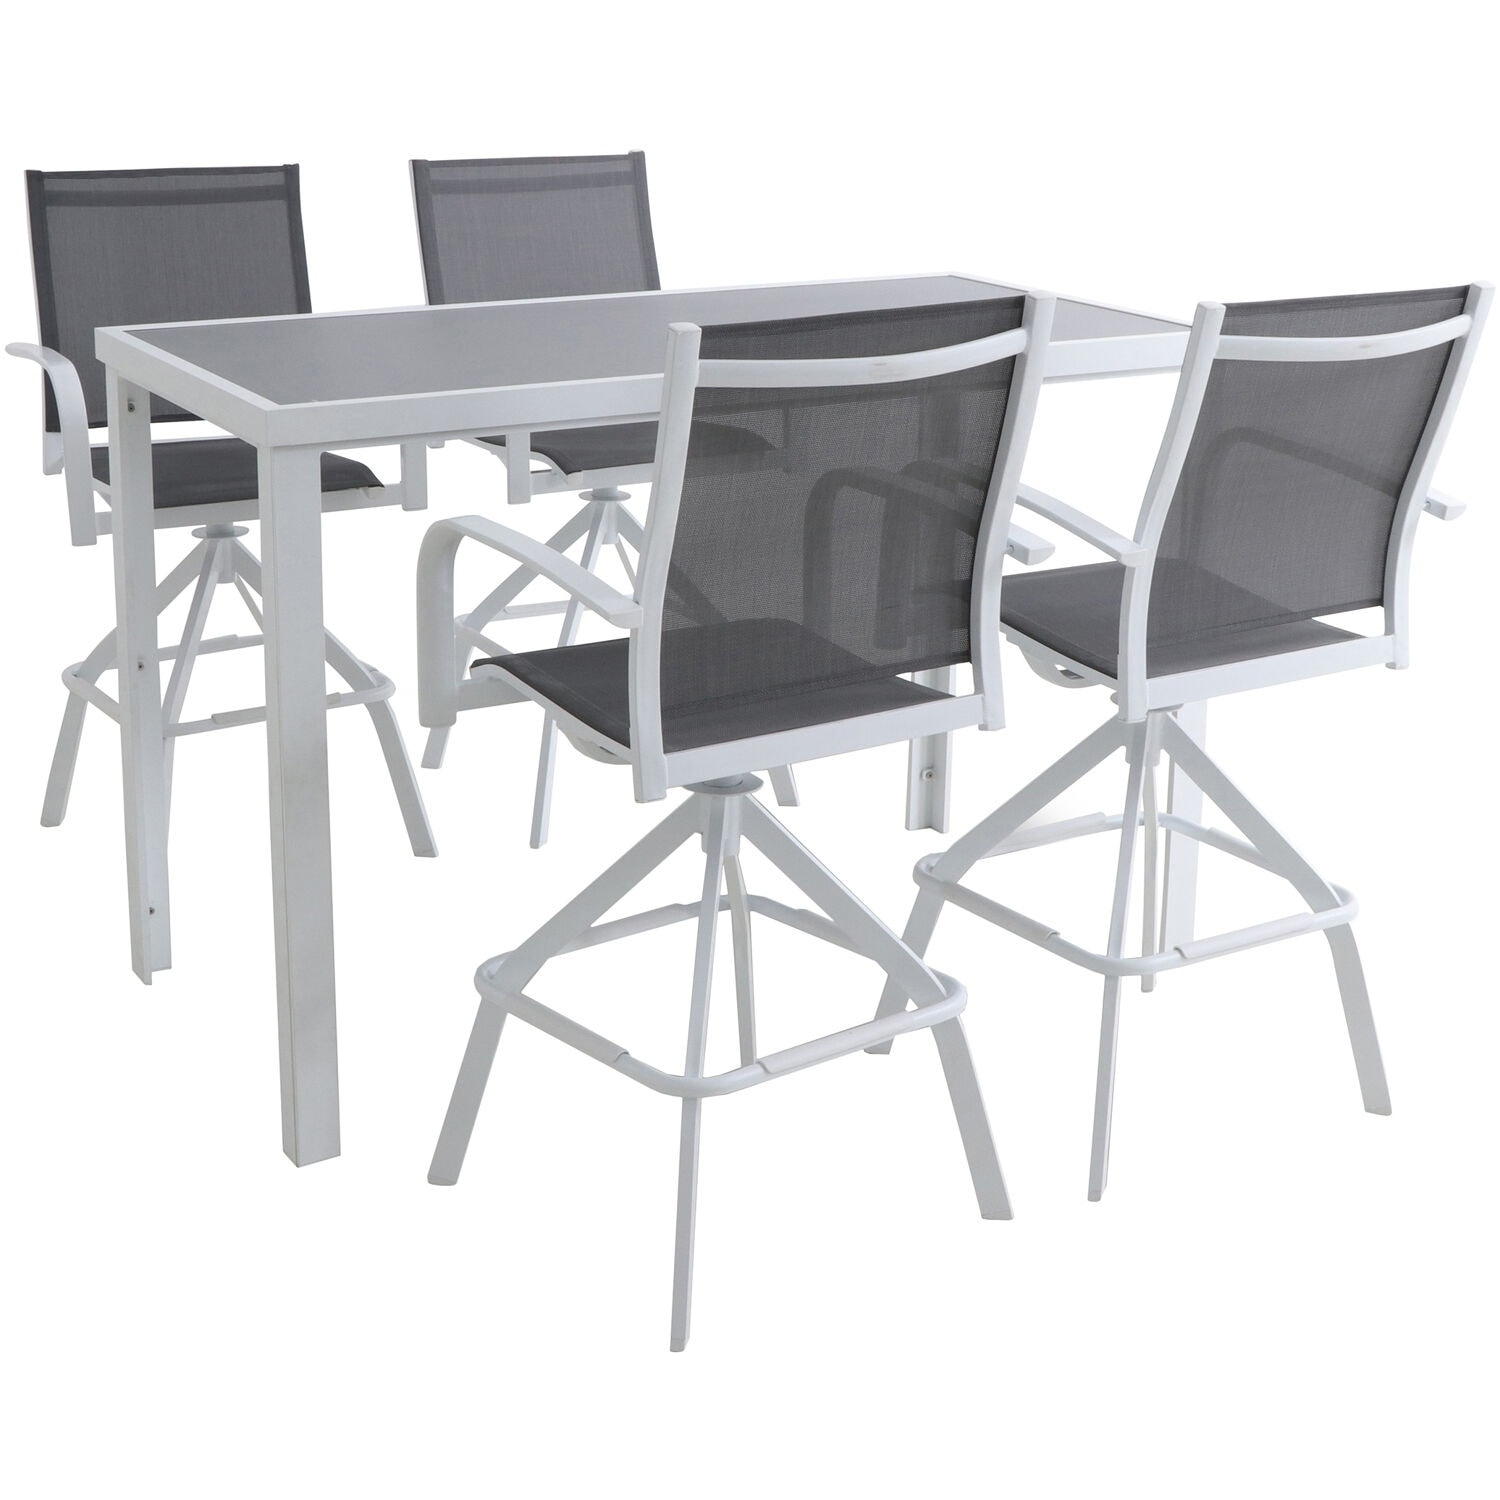 Picture of: Hanover Naples 5 Piece Outdoor High Dining Set With 4 Swivel Bar Chairs And A Glass Top Bar Table White Overstock 28365620